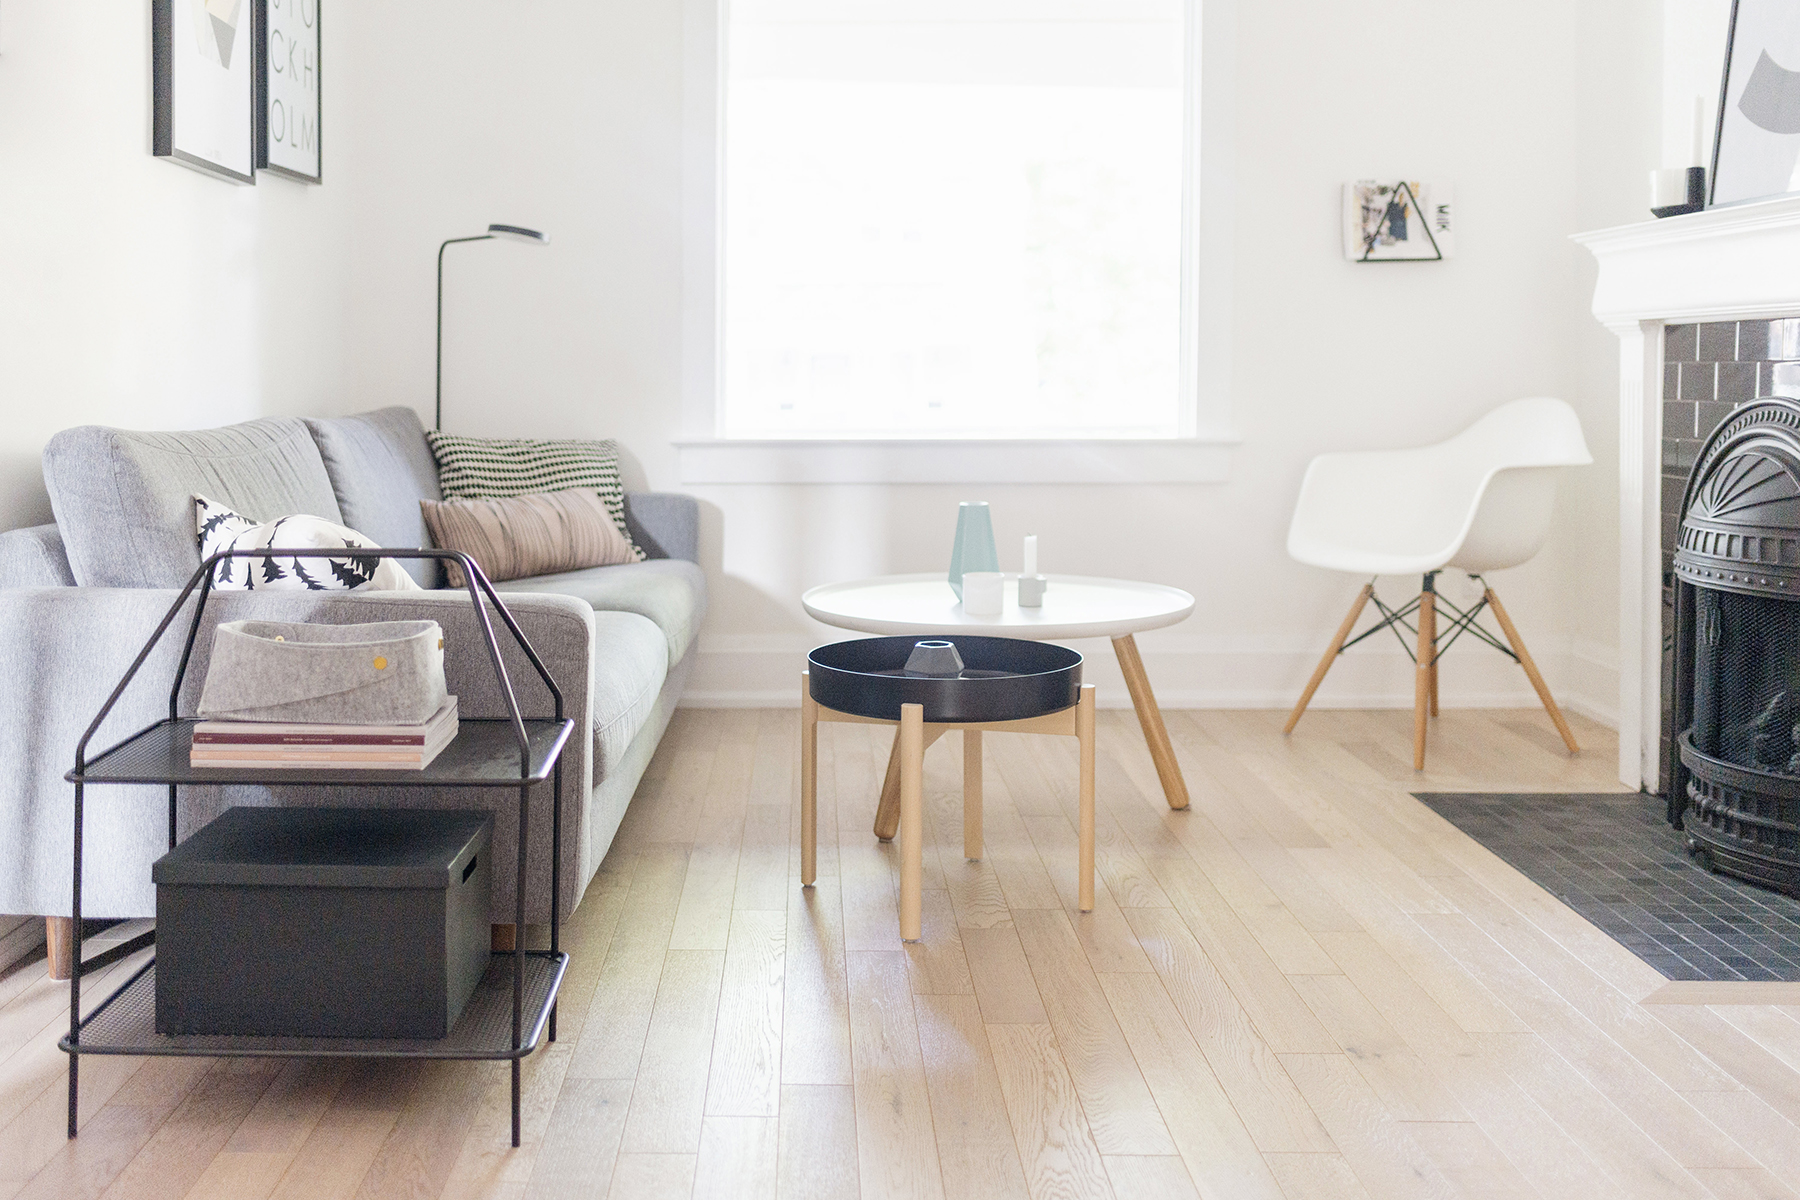 Ikea Ypperlig Top 25 Picks From The 2019 Ikea Catalogue Happy Grey Lucky